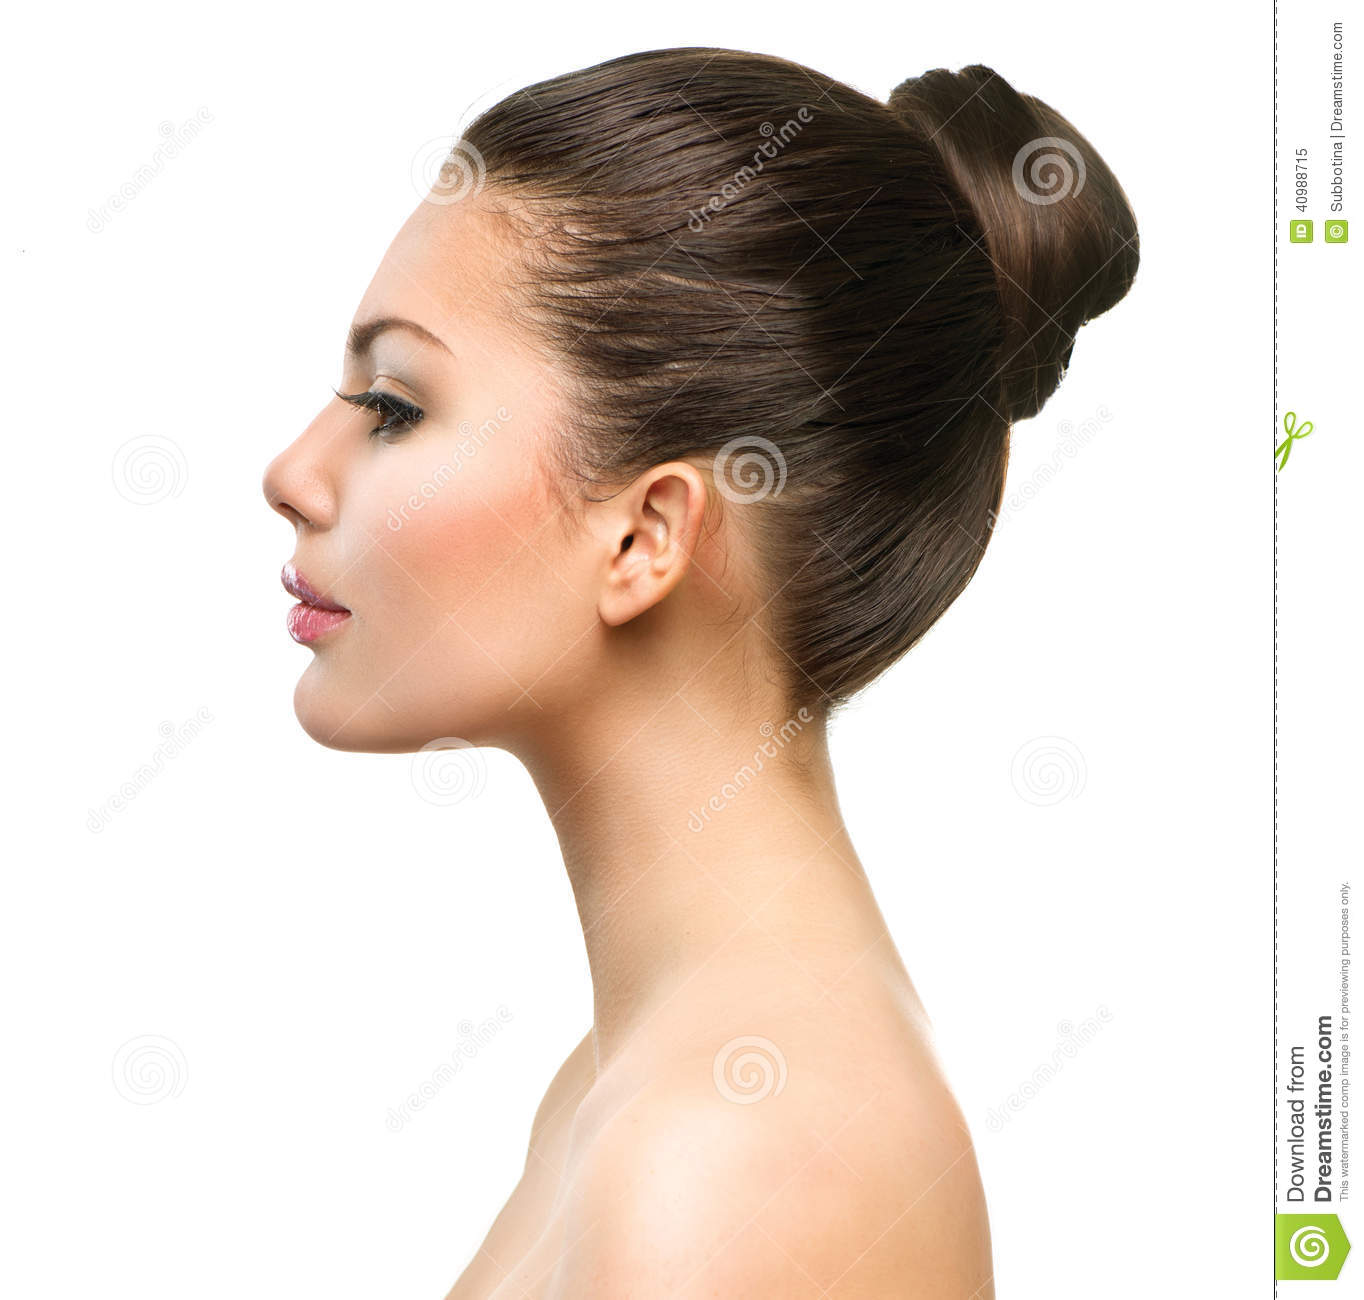 Beautiful Profile Face of Young Woman with Clean Fresh Skin Female Nose Profile